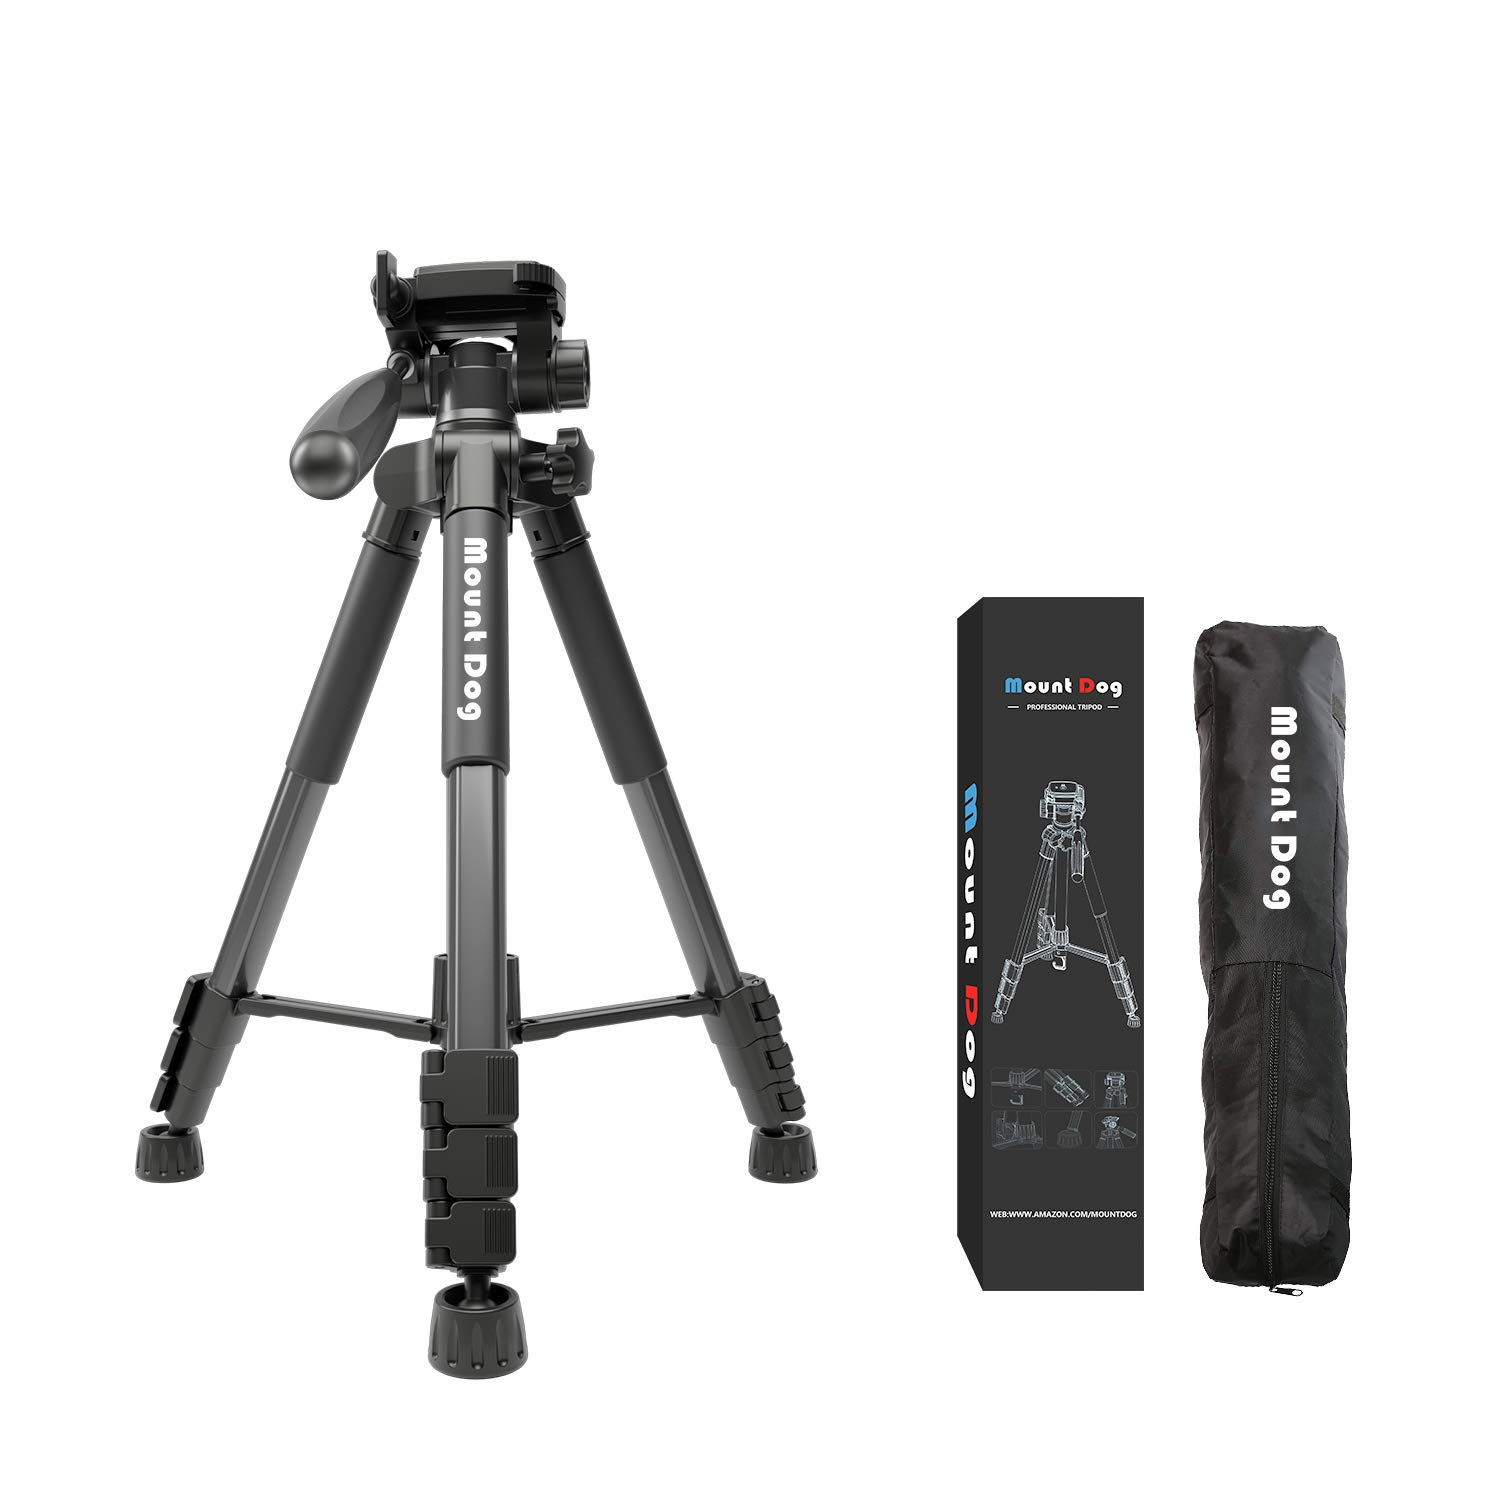 MountDog 60-inch Camera Tripod Aluminum Lightweight Tripod & Monopod Compact for Travel with 360° Panorama and Quick Release Plates for Canon Nikon DSLR Video Shooting - Black by MOUNTDOG